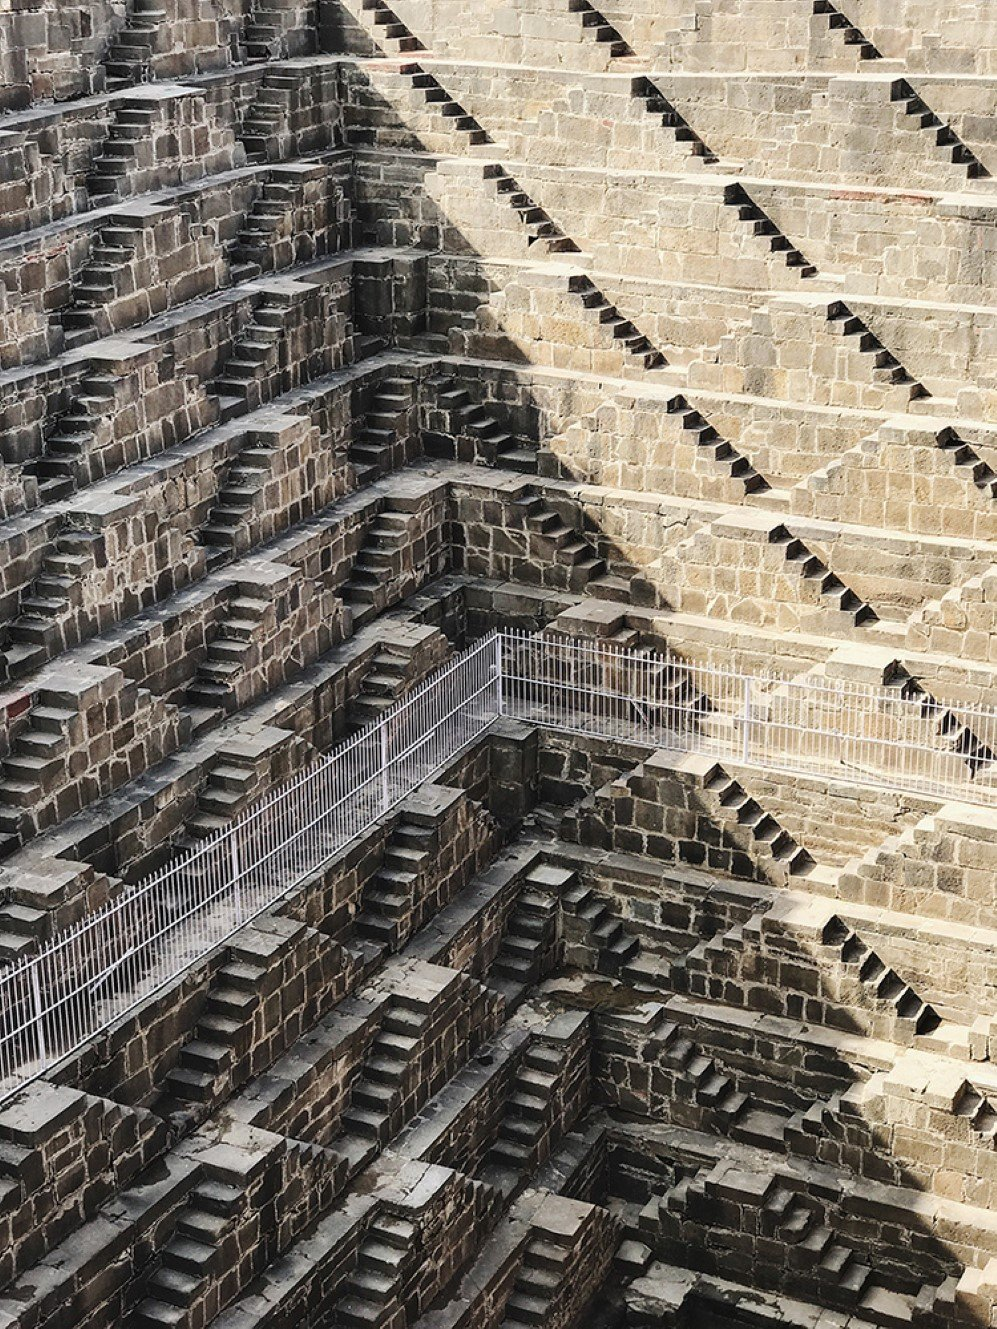 This photo was taken when I was traveling in India. Chand Baori consists of 3,500 narrow steps over 13 storeys. It extends approximately 30 meters into the ground making it one of the deepest and largest stepwells in India. I marveled these elegant stepwells and shadows, I immediately took out my camera and captured this beautiful scene before it was gone.